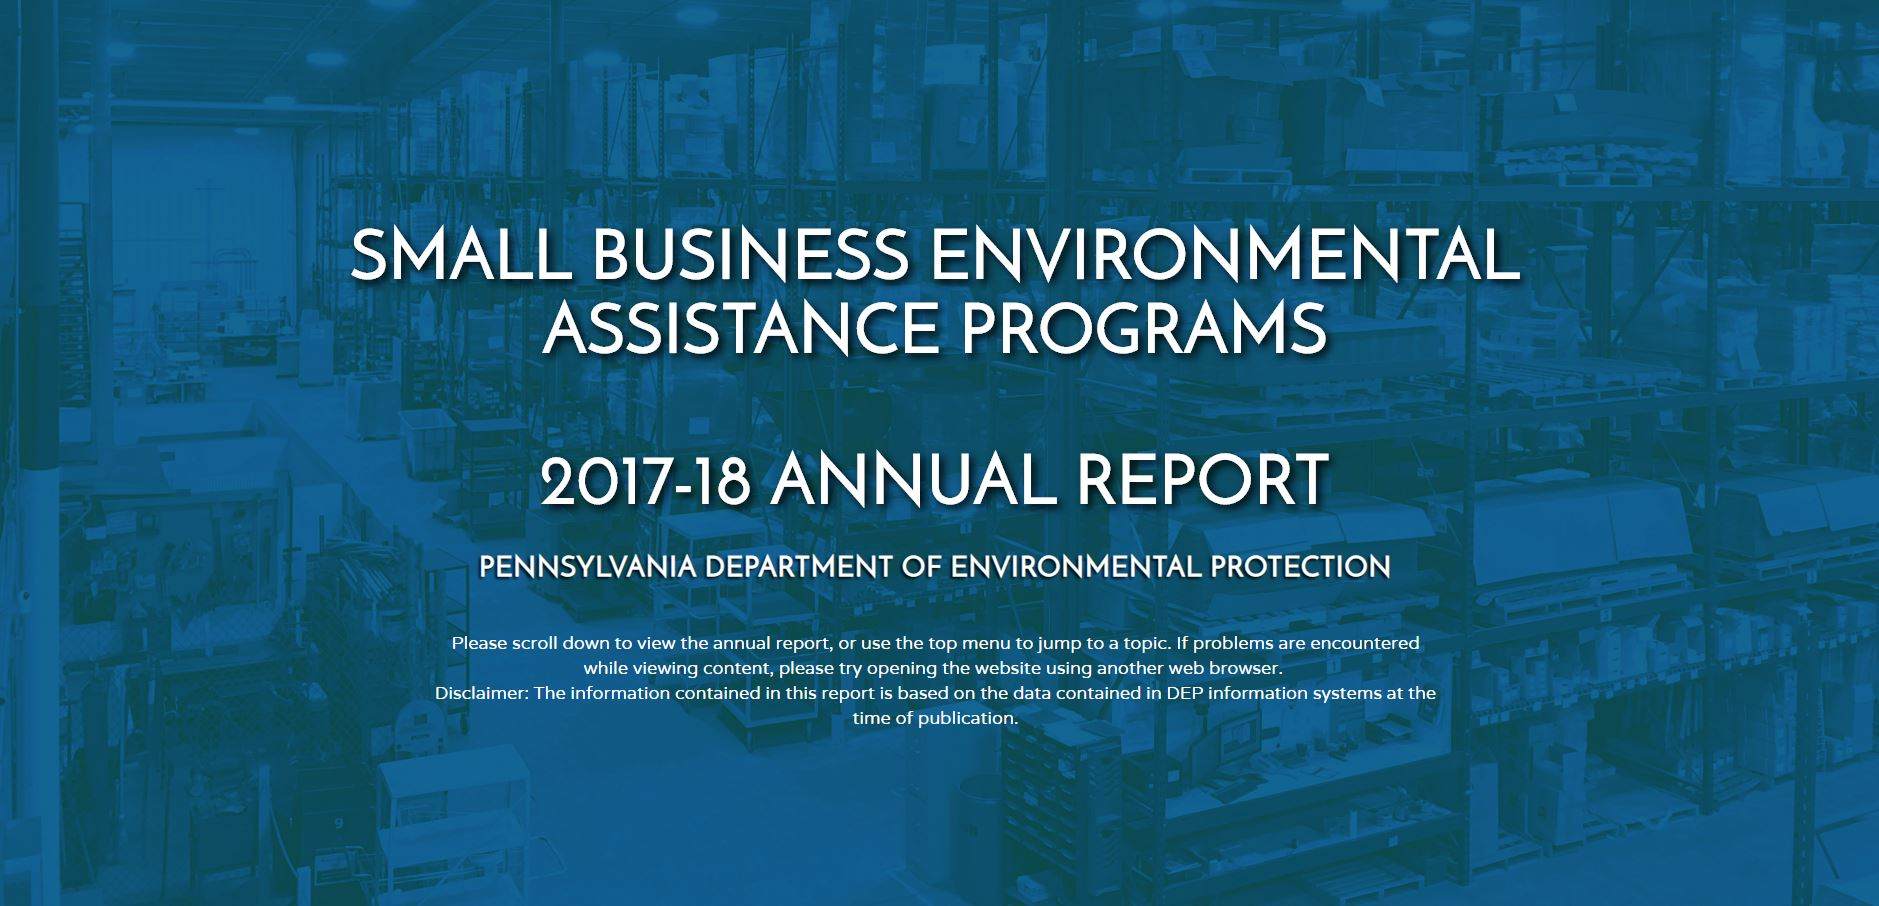 Small Business Programs Annual Report